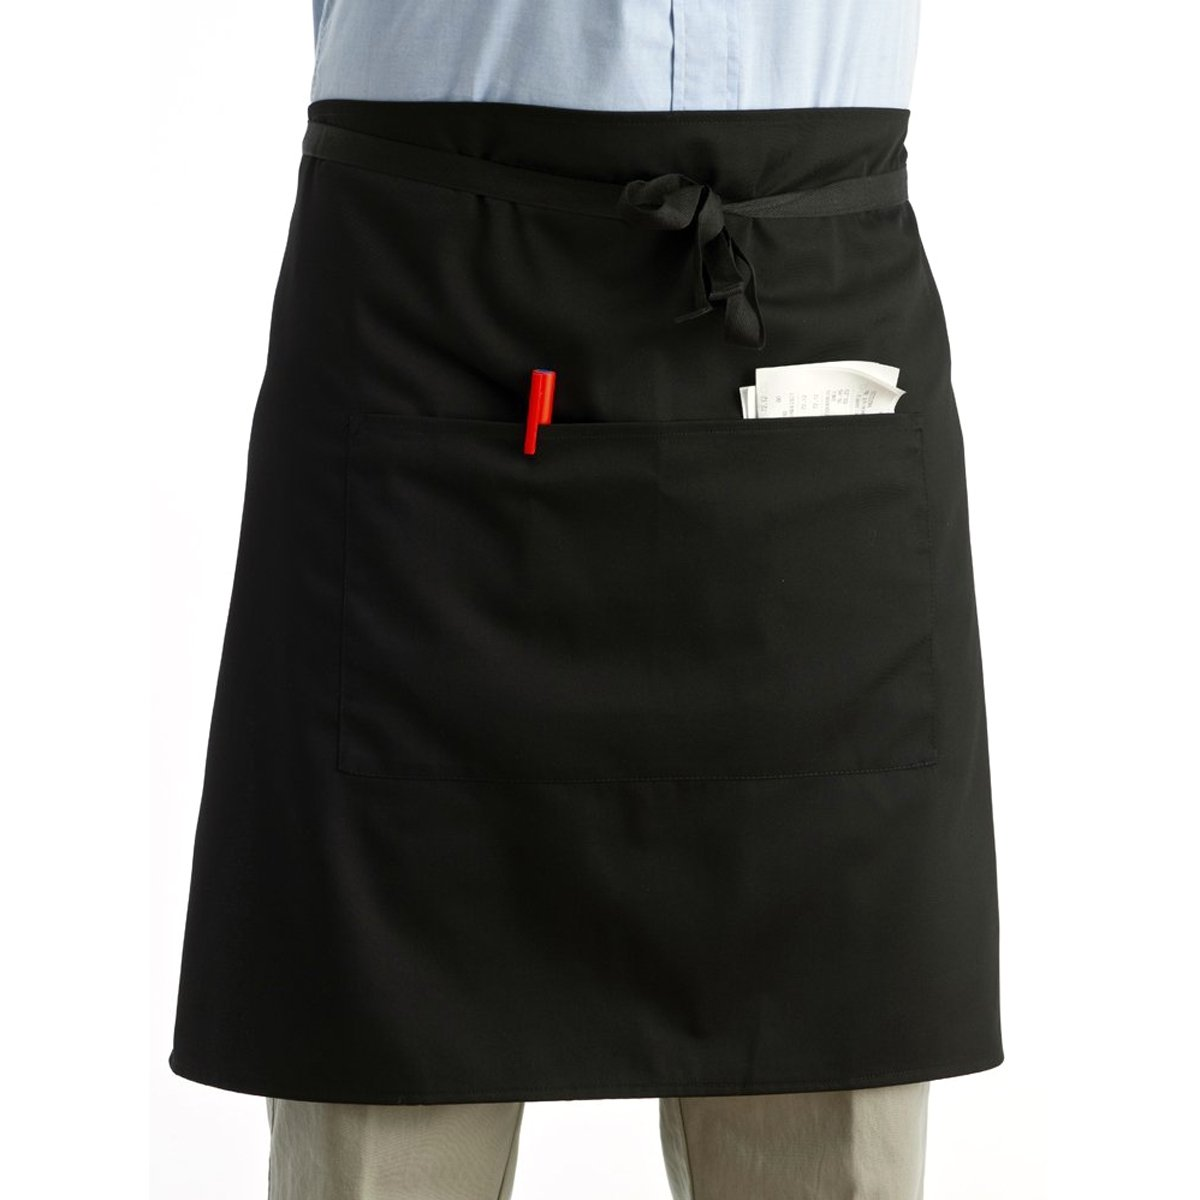 Pixnor Universal Unisex Women Men Kitchen Cooking Waist Apron Short Apron Waiter Apron with Double Pockets